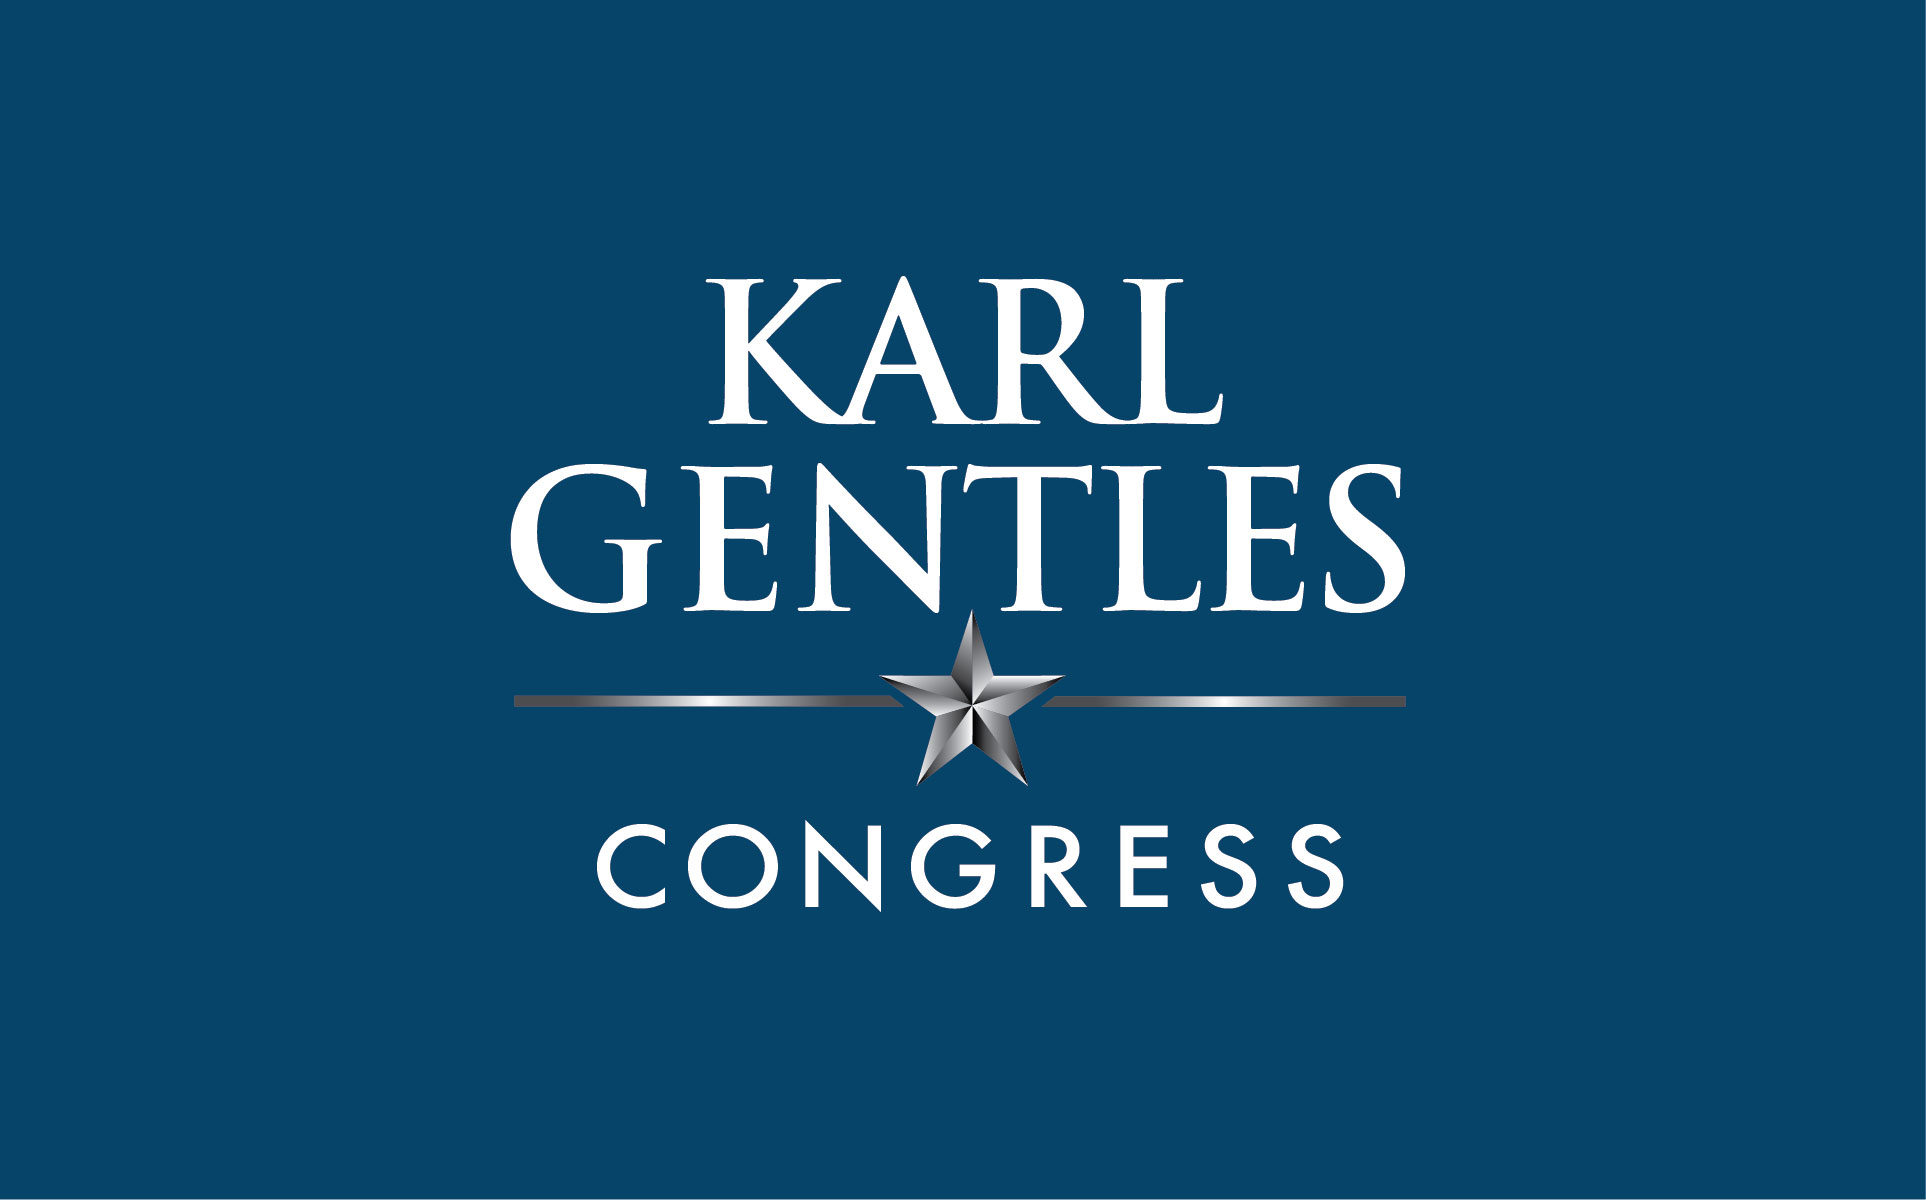 Karl_gentles_campaign_logo_-_final